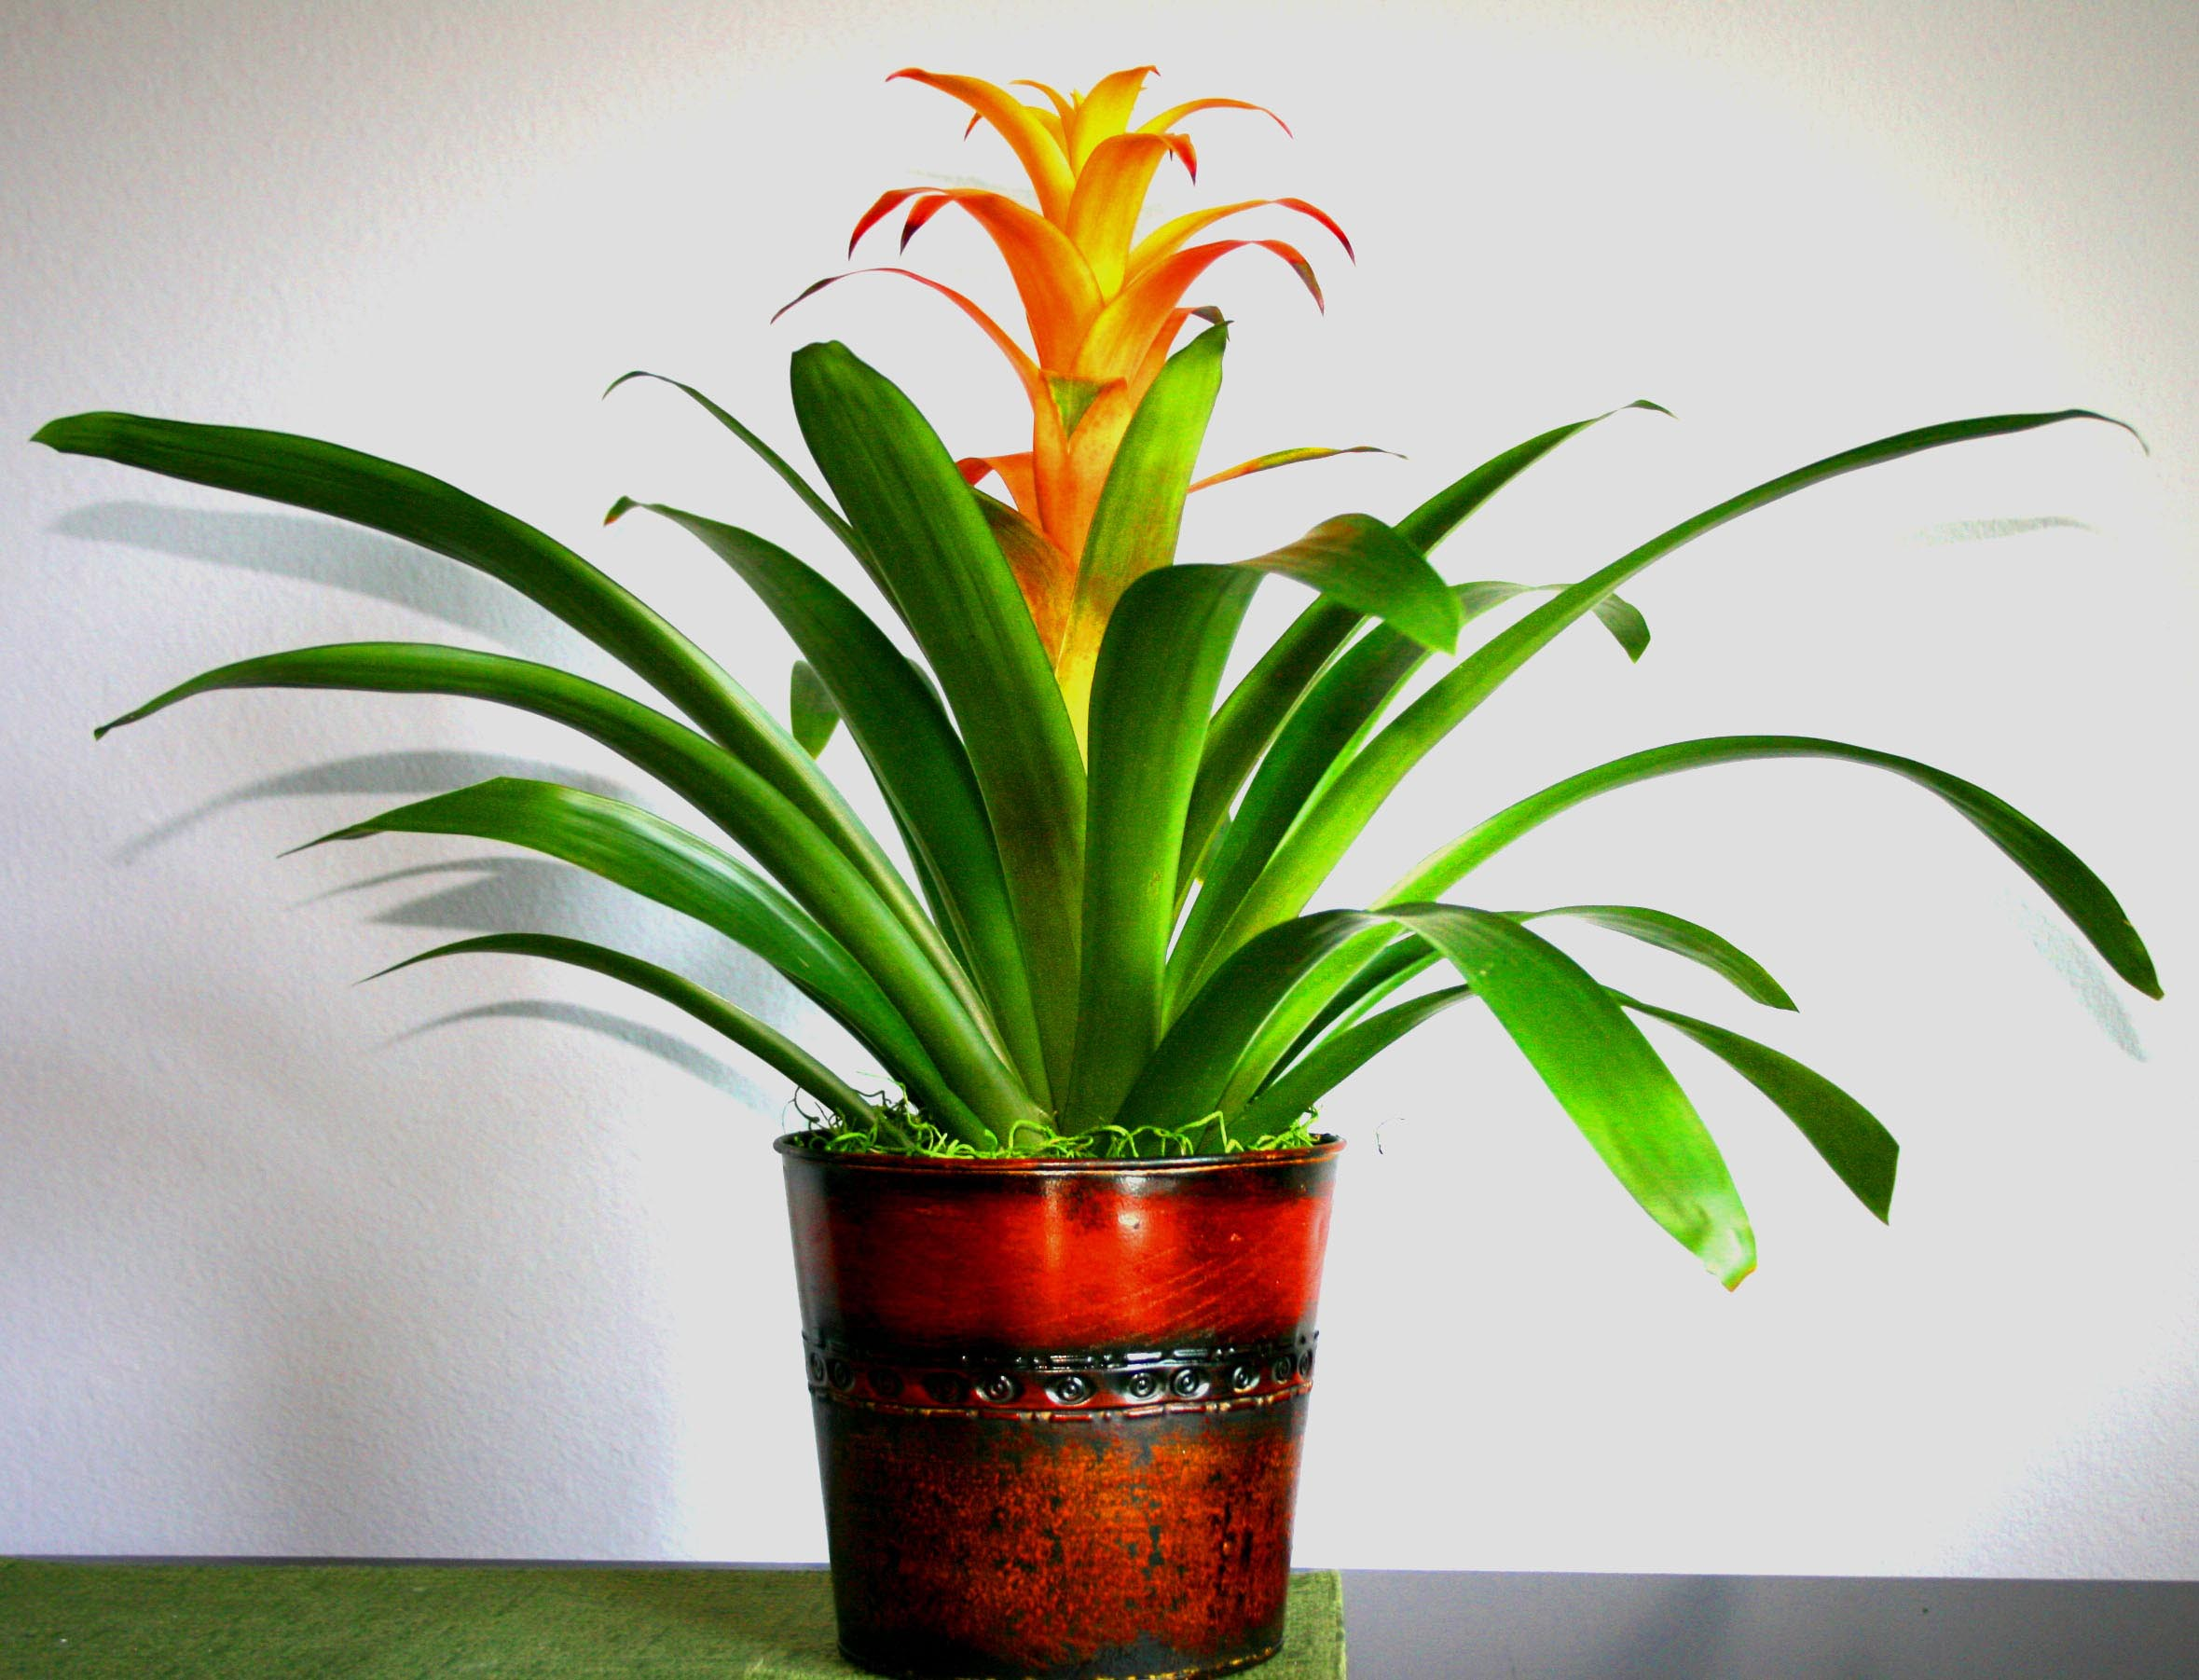 Low maintenance indoor flowering plants garden design ideas for Flowering plants for indoors